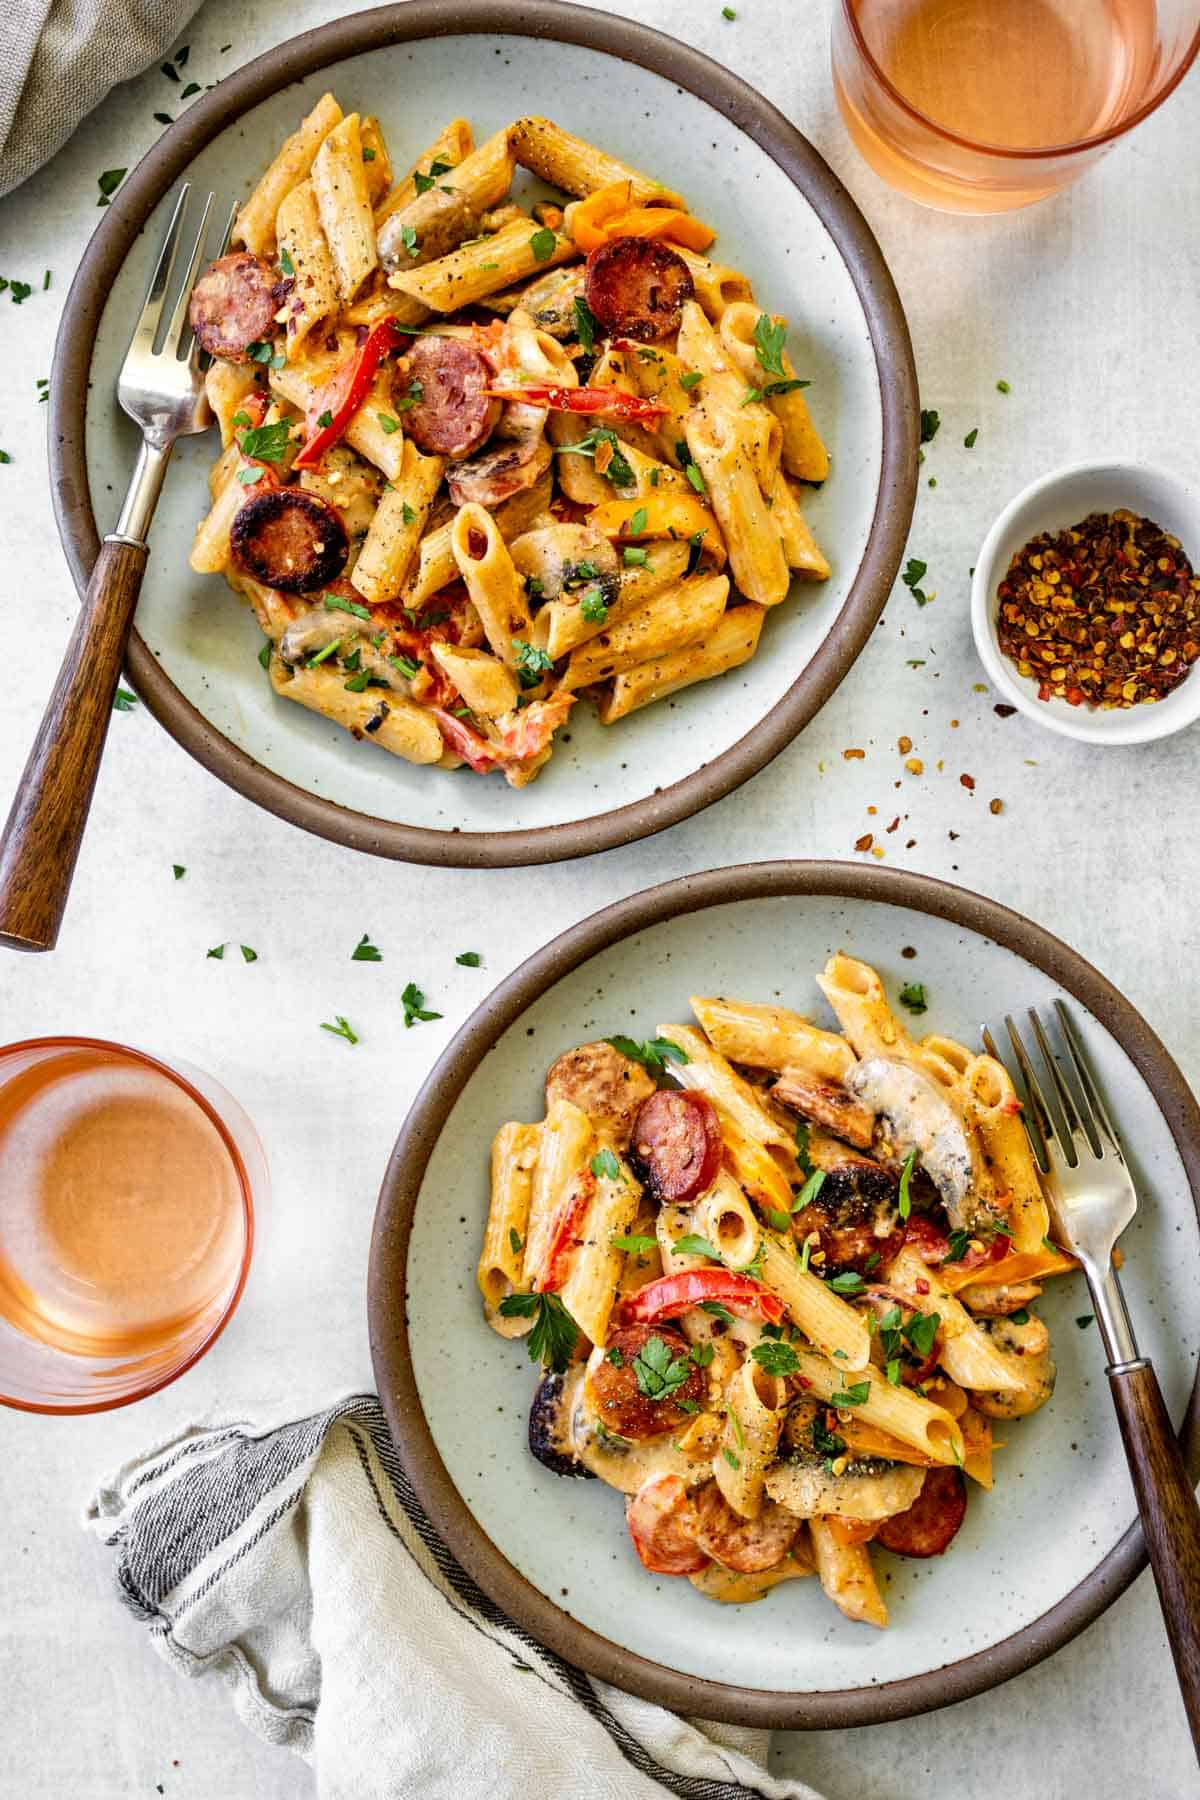 Two plates of creamy cajun pasta are served with two glasses of wine.